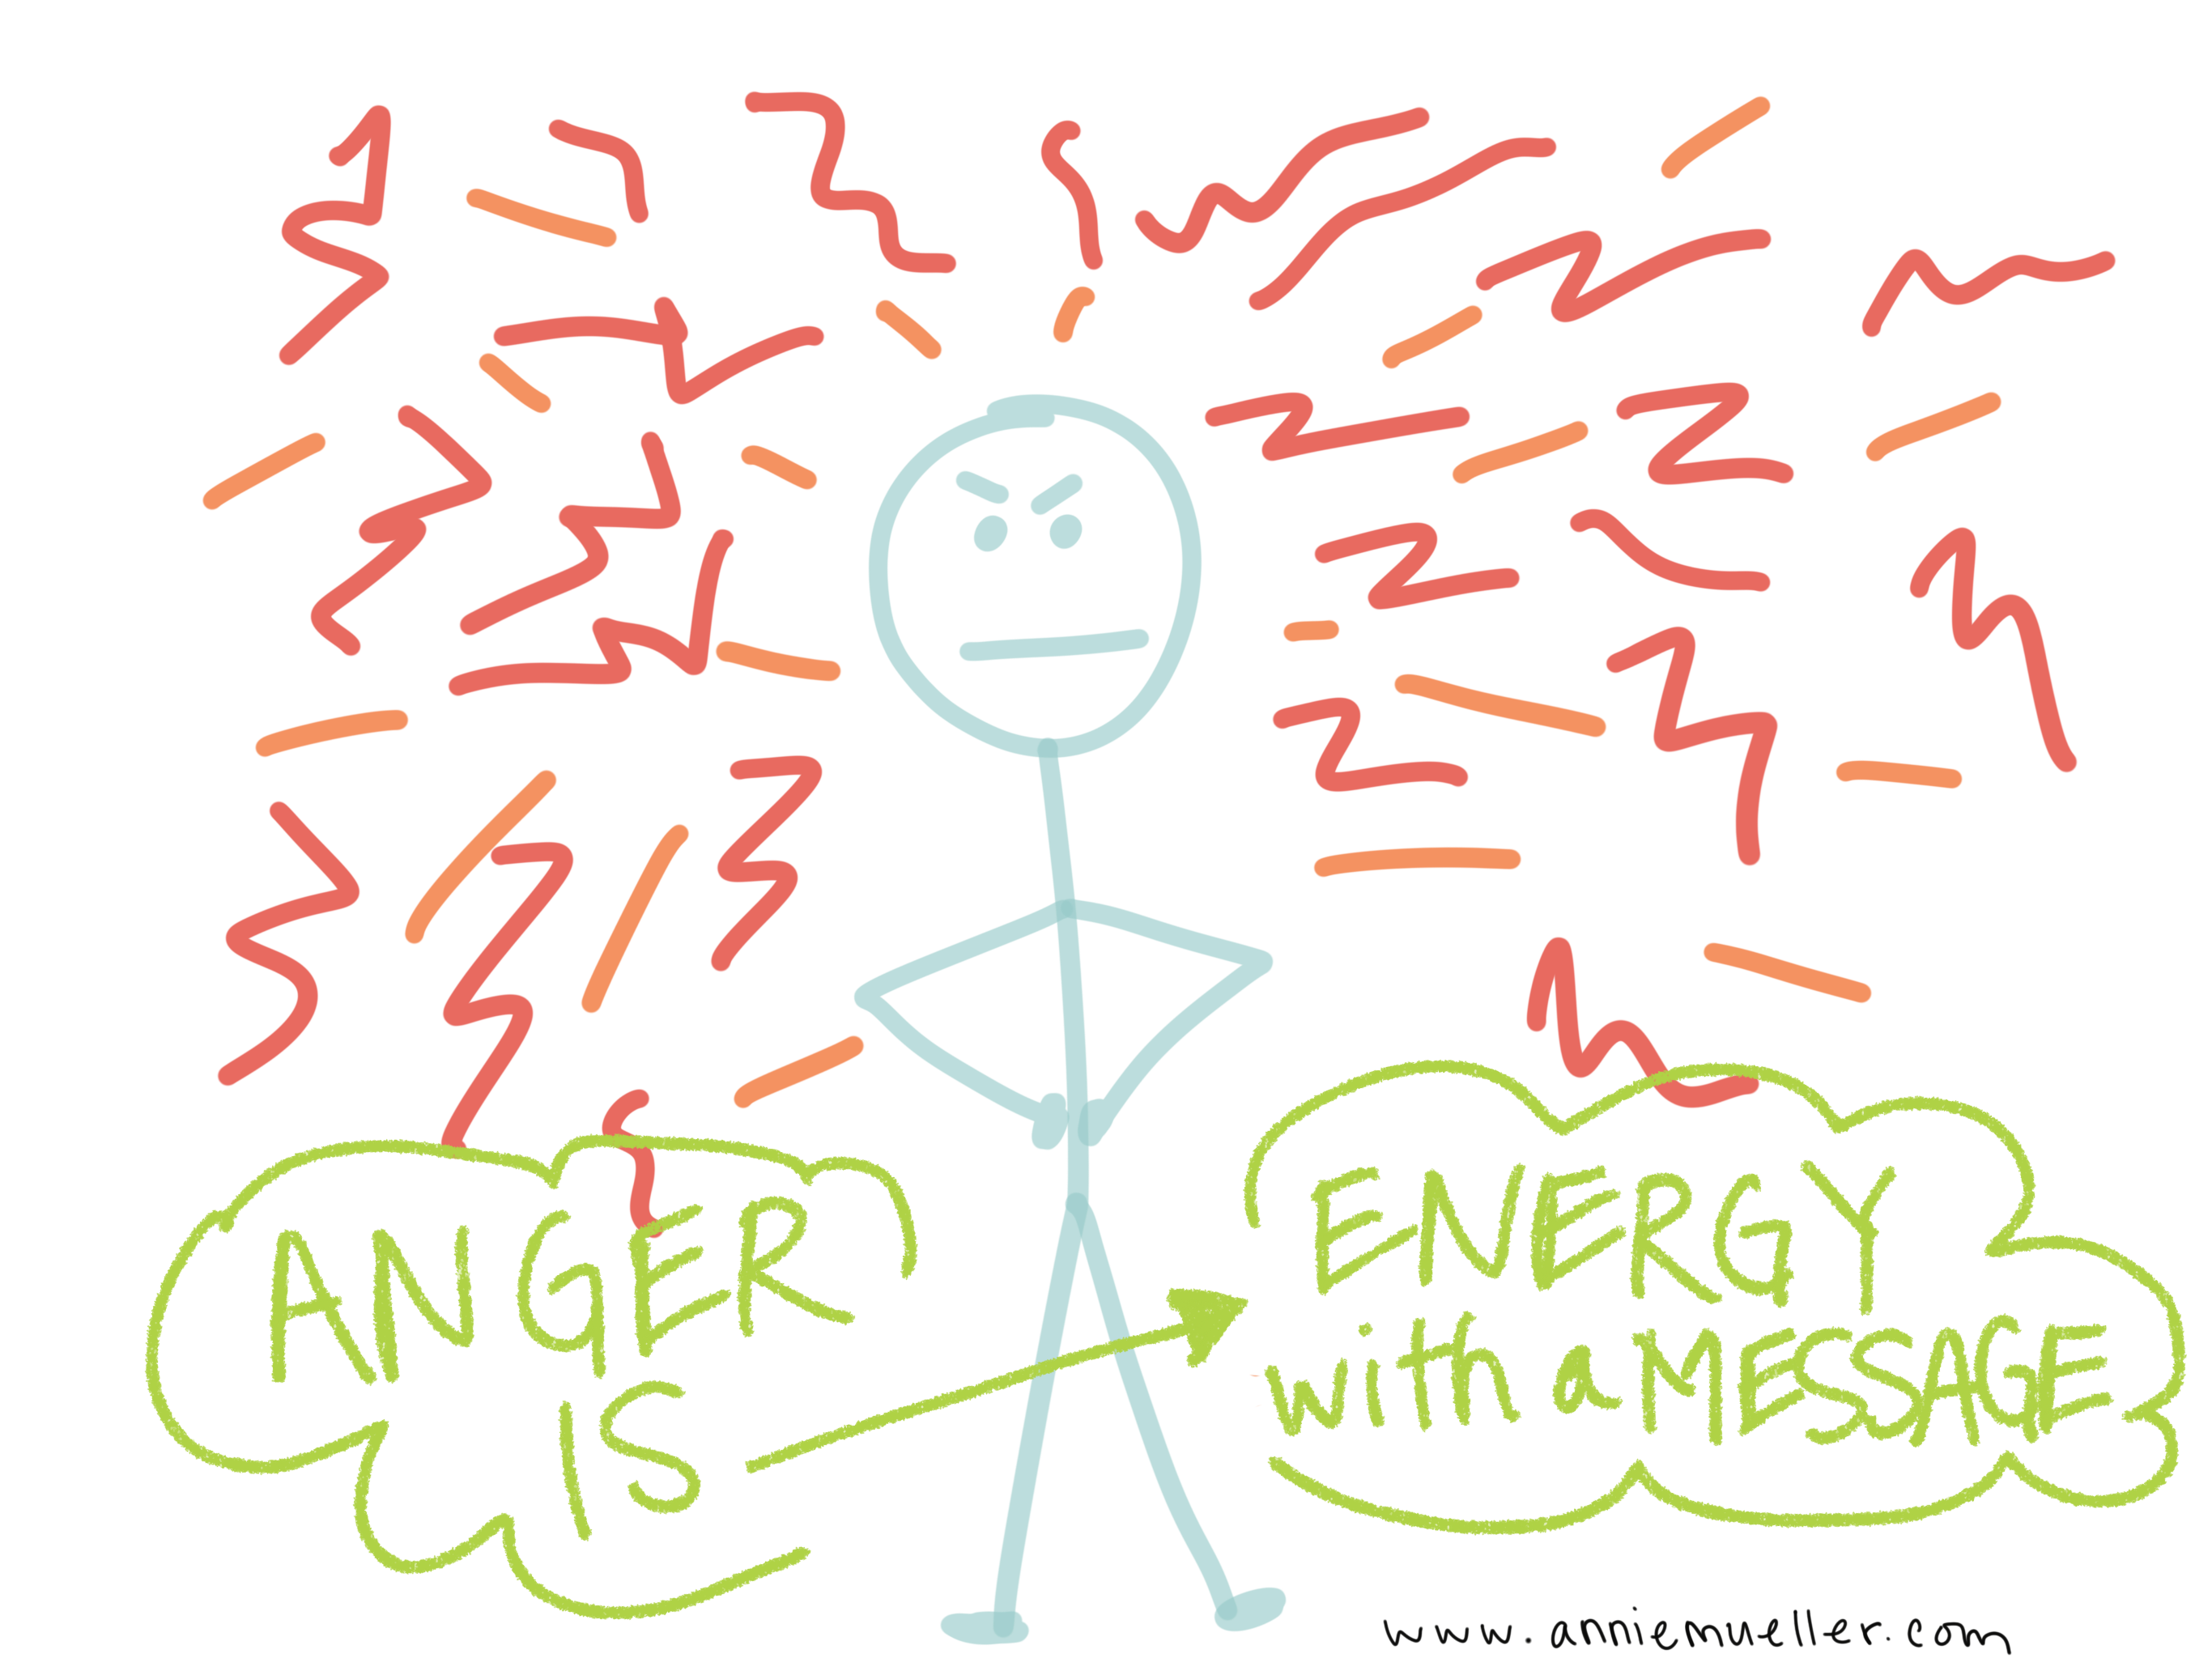 Anger is energy with a message